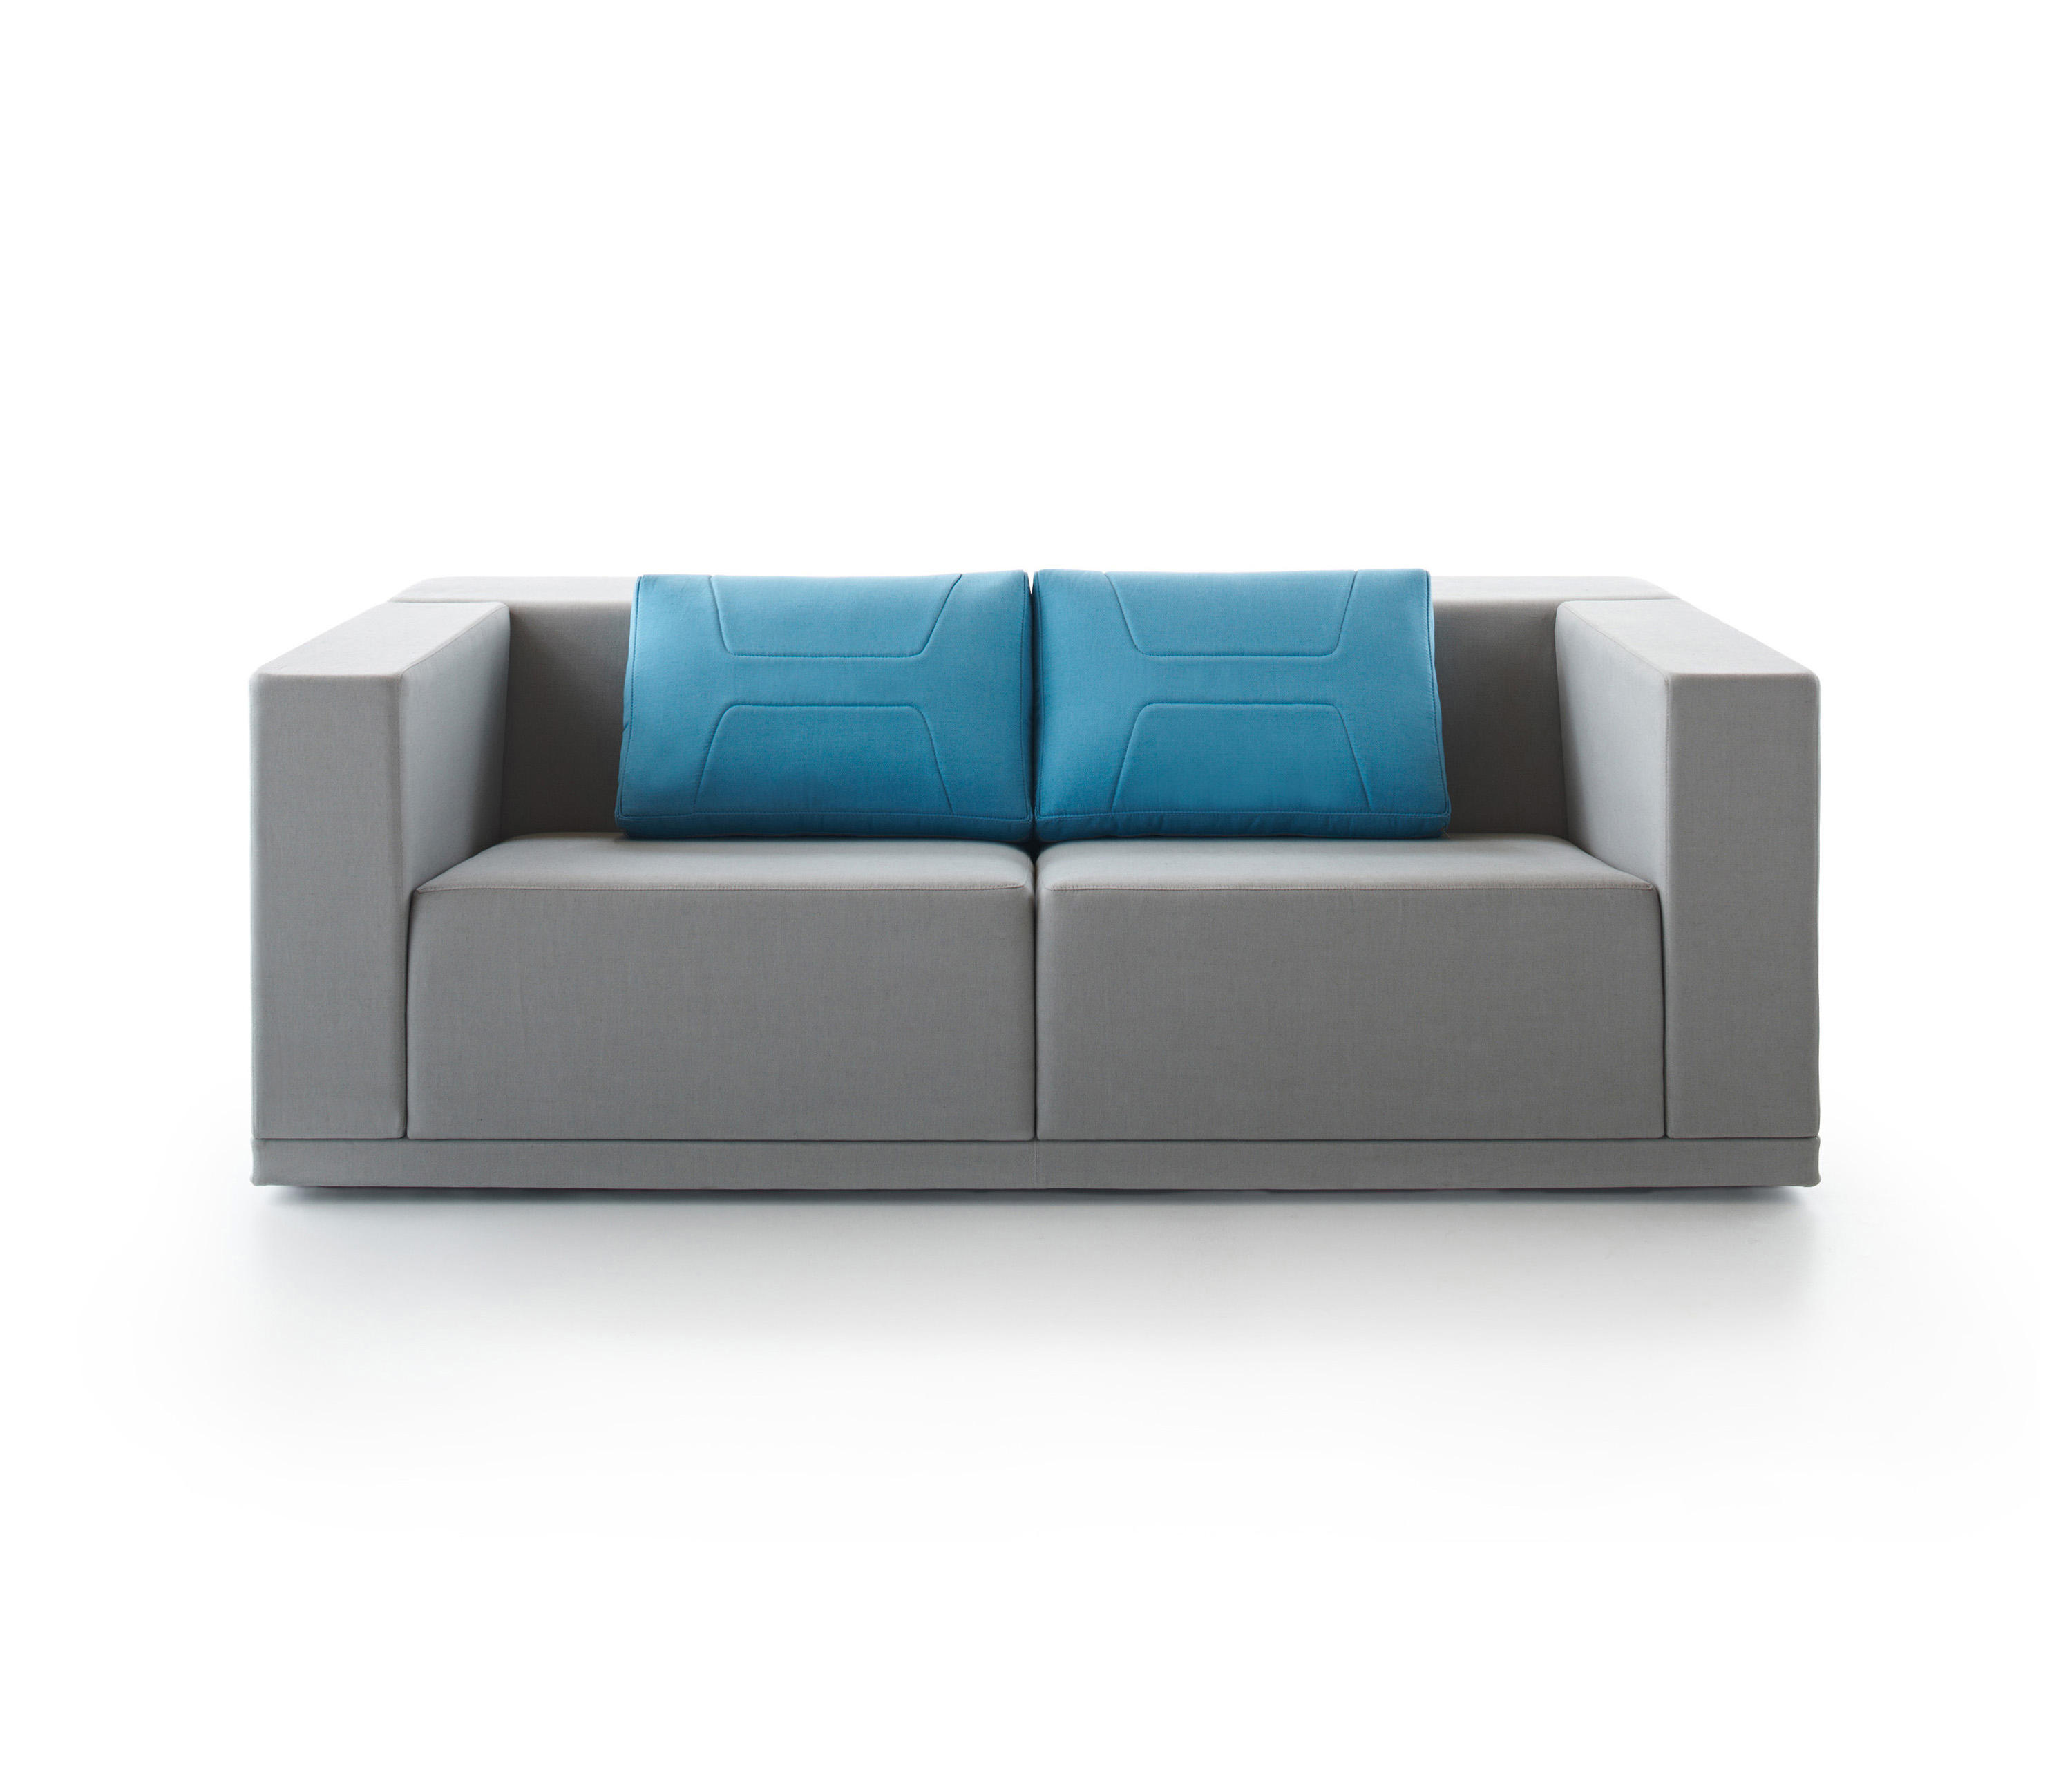 sofa gallery pty ltd fusion 3 seater with chaise kayt lounge sofas from schiavello international